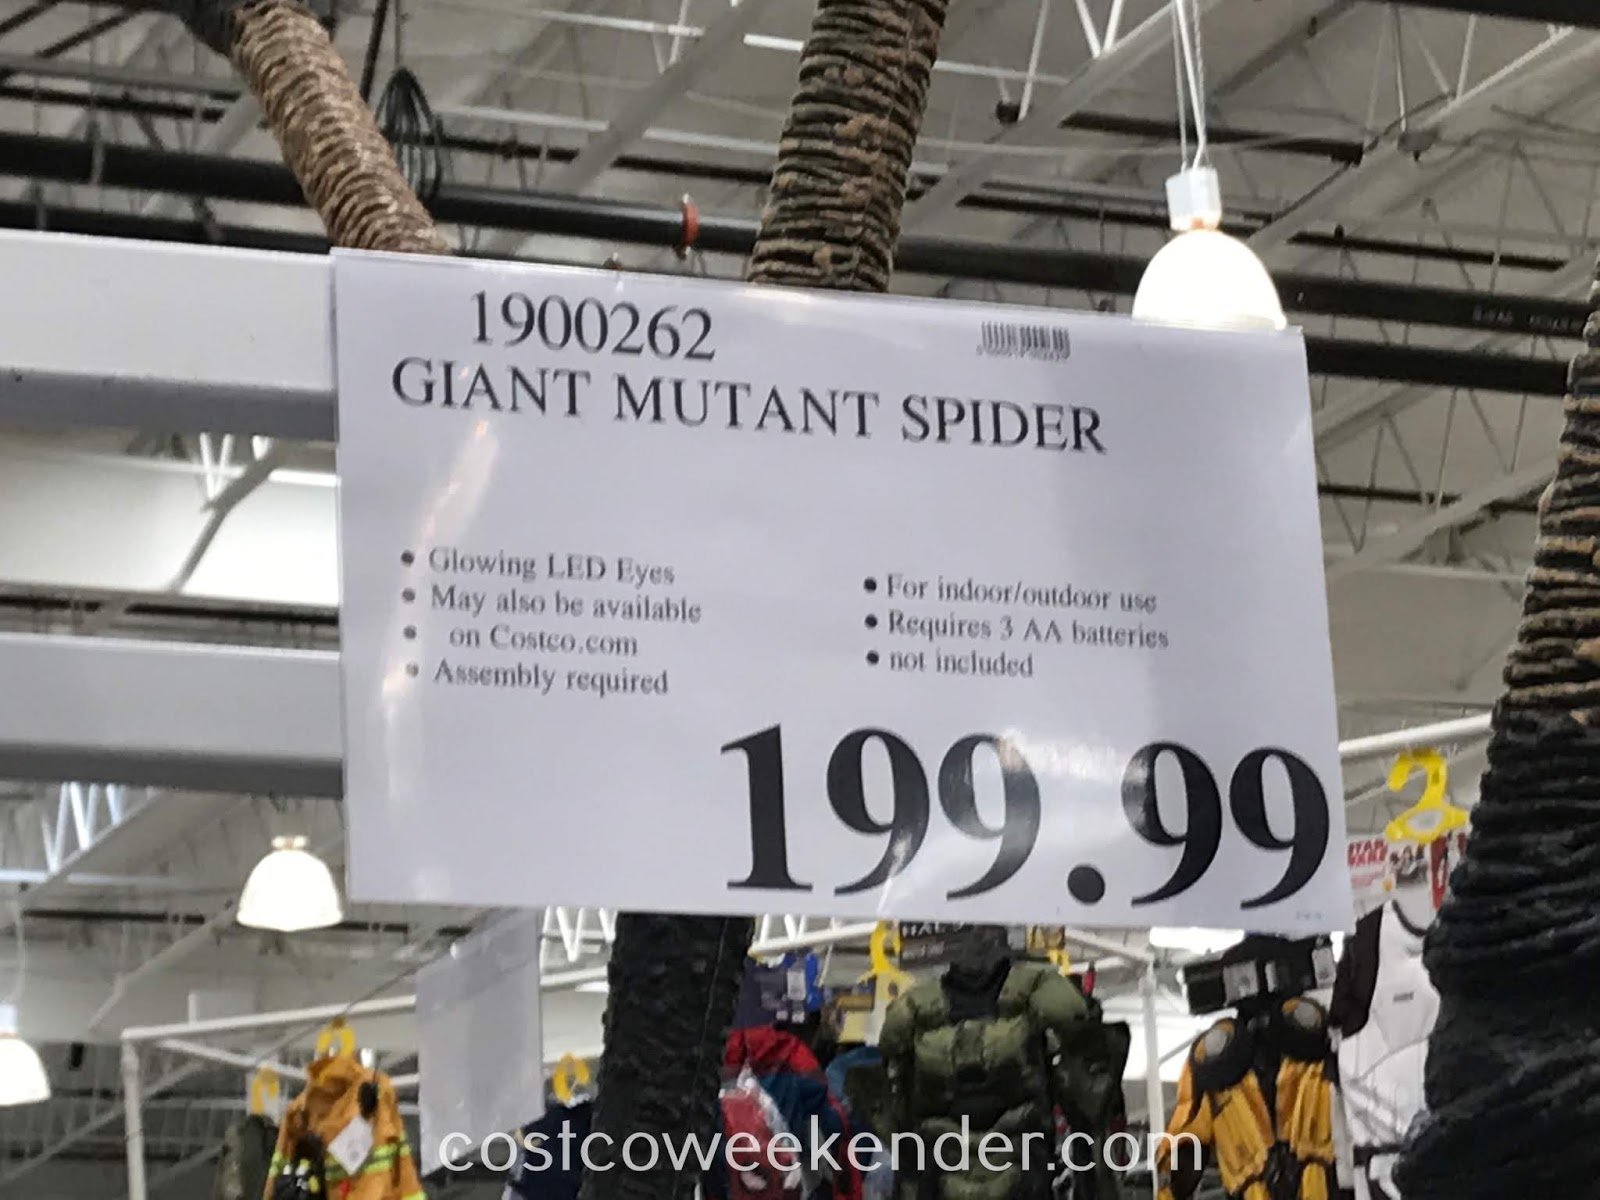 Deal for the Giant Mutant Spider at Costco